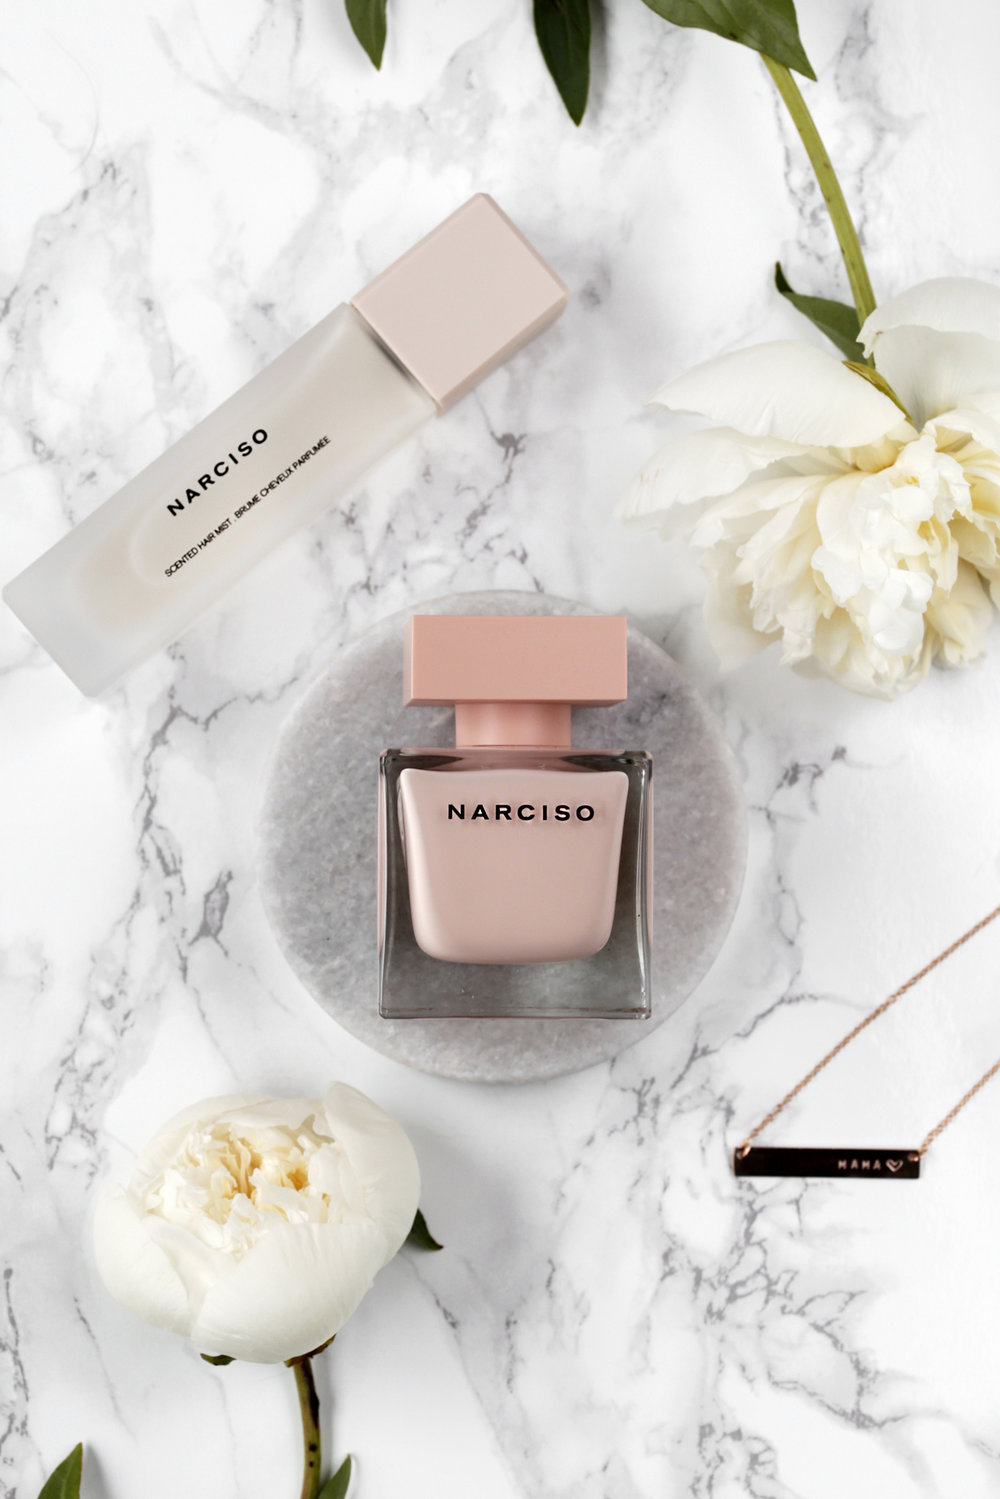 narciso rodriguez poudree perfume - Last minute Mother's Day gift ideas_7646.jpg